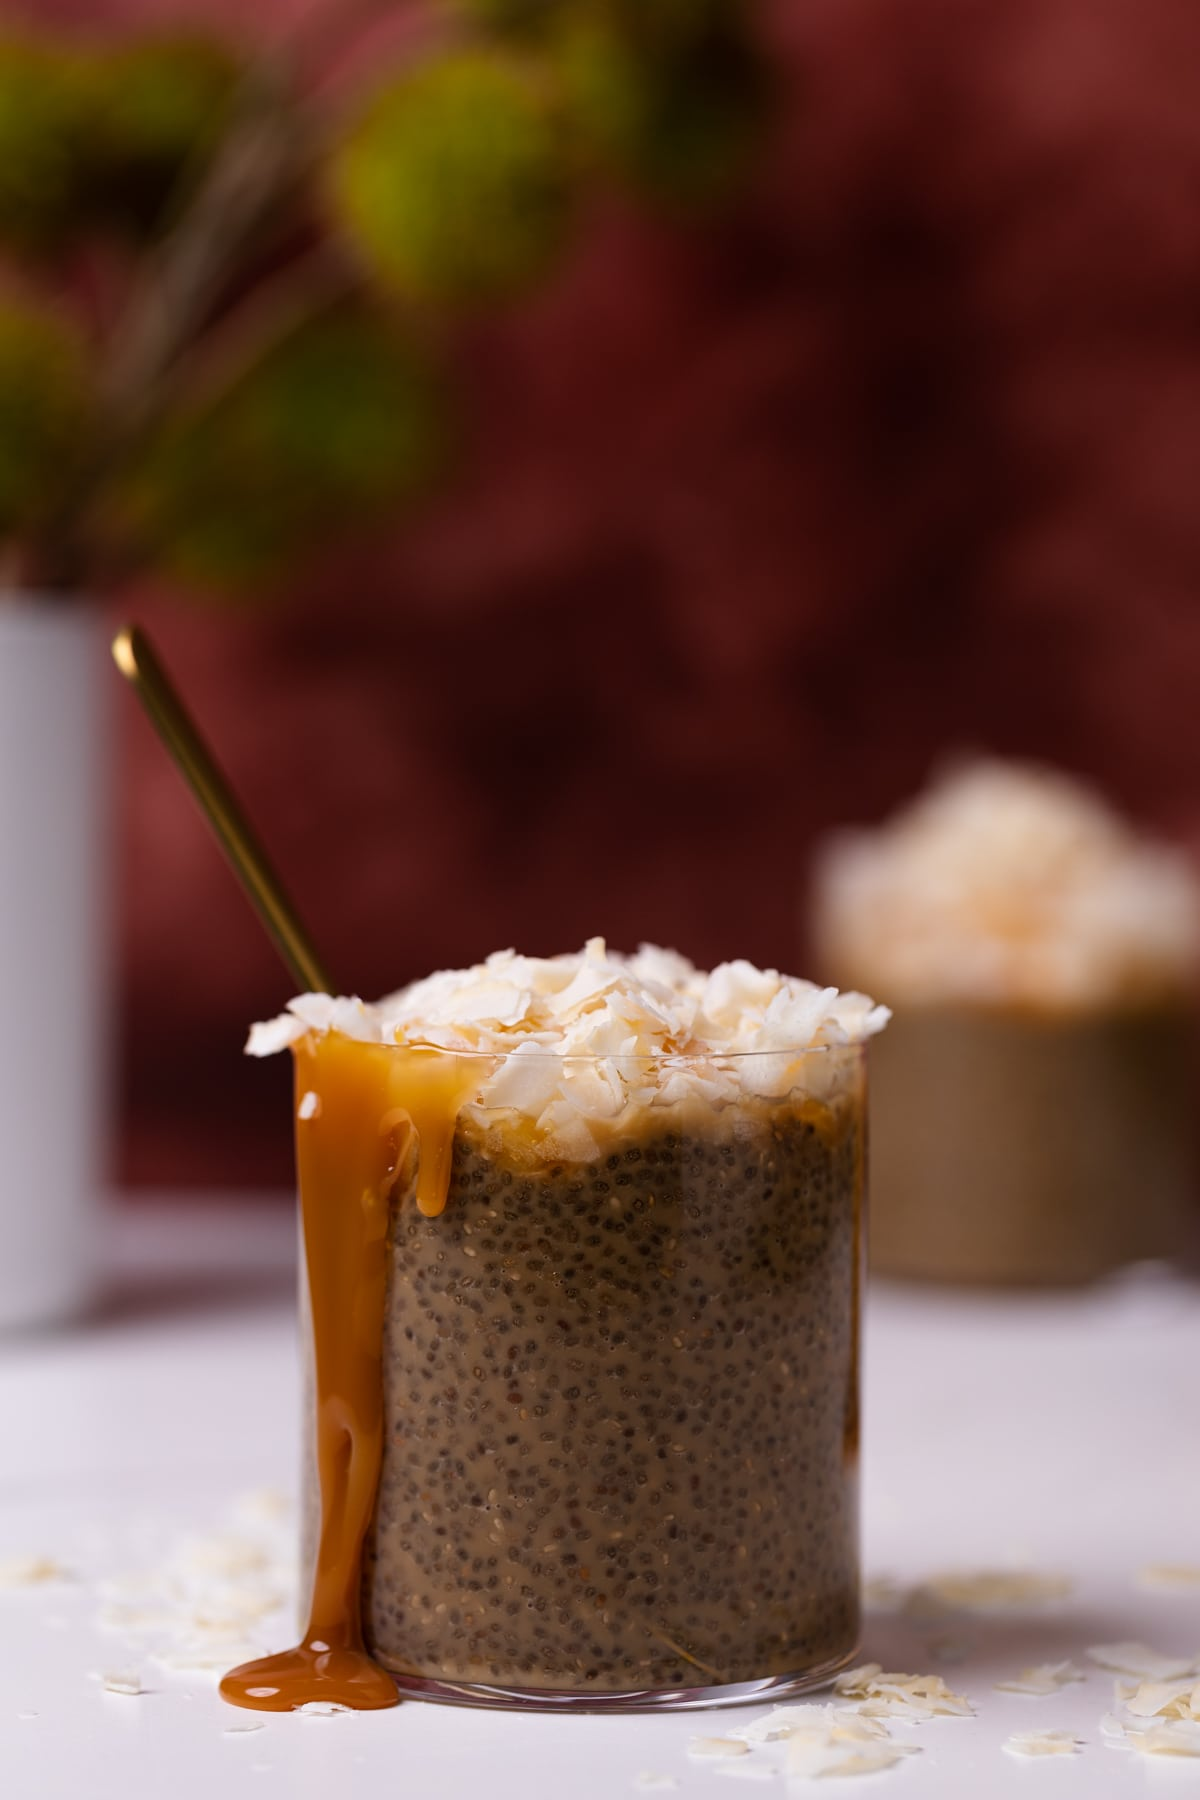 Caramel Macchiato Chia Pudding + Coconut with caramel sauce dripping down the side